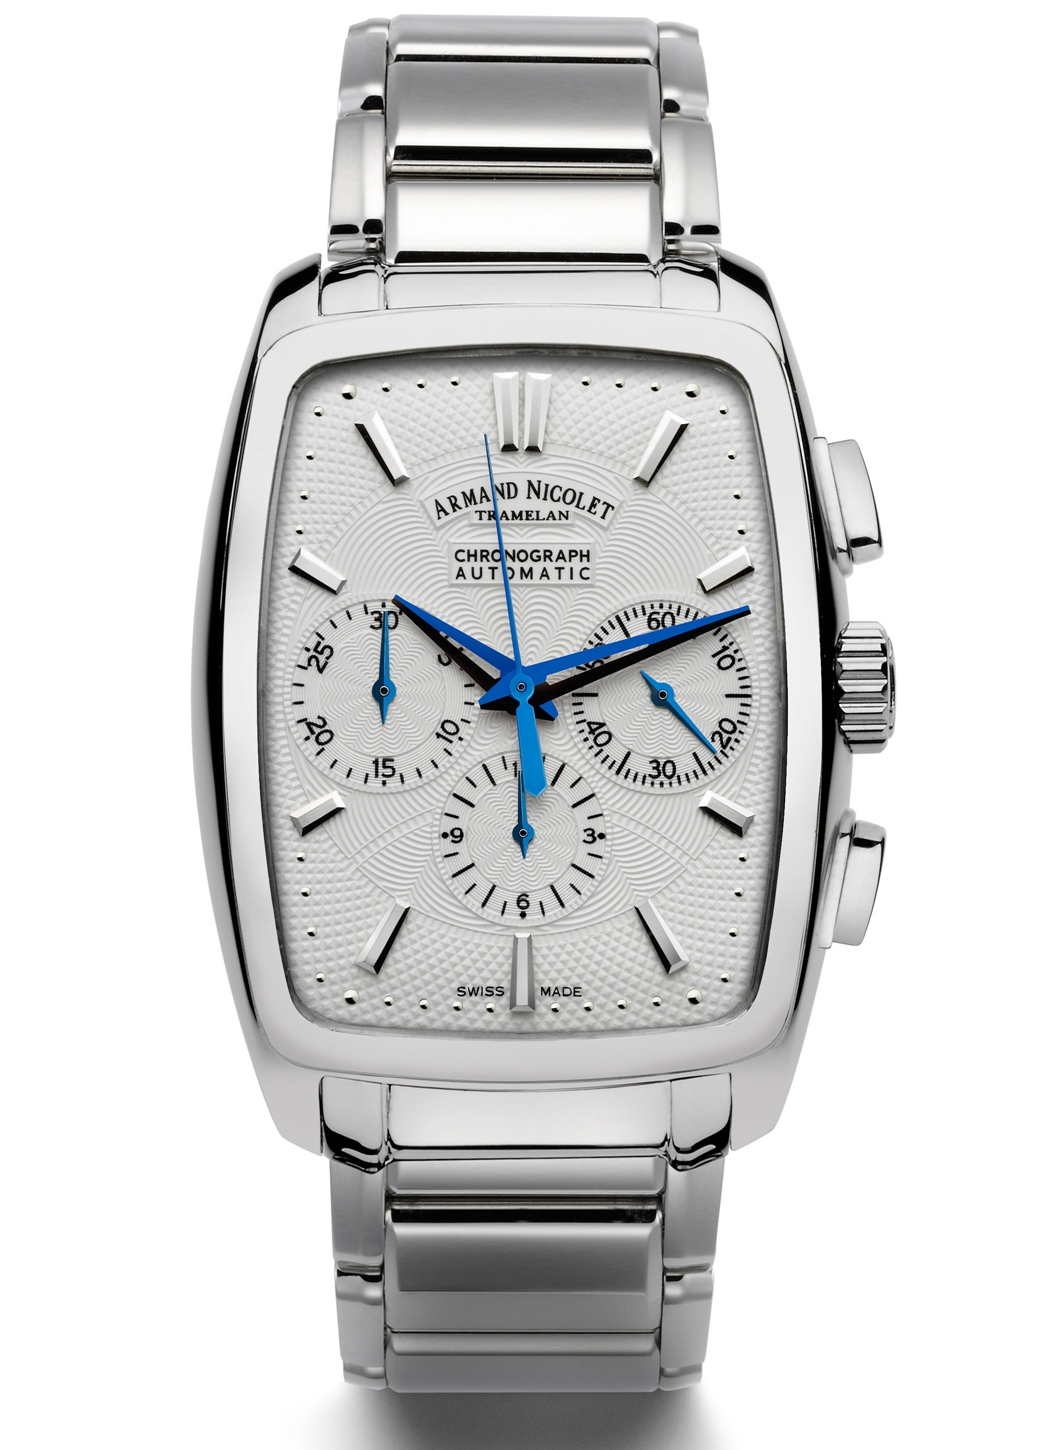 Armand nicolet tm7 chronograph automatic watch new 9634a ag m9630 for Armand nicolet watches